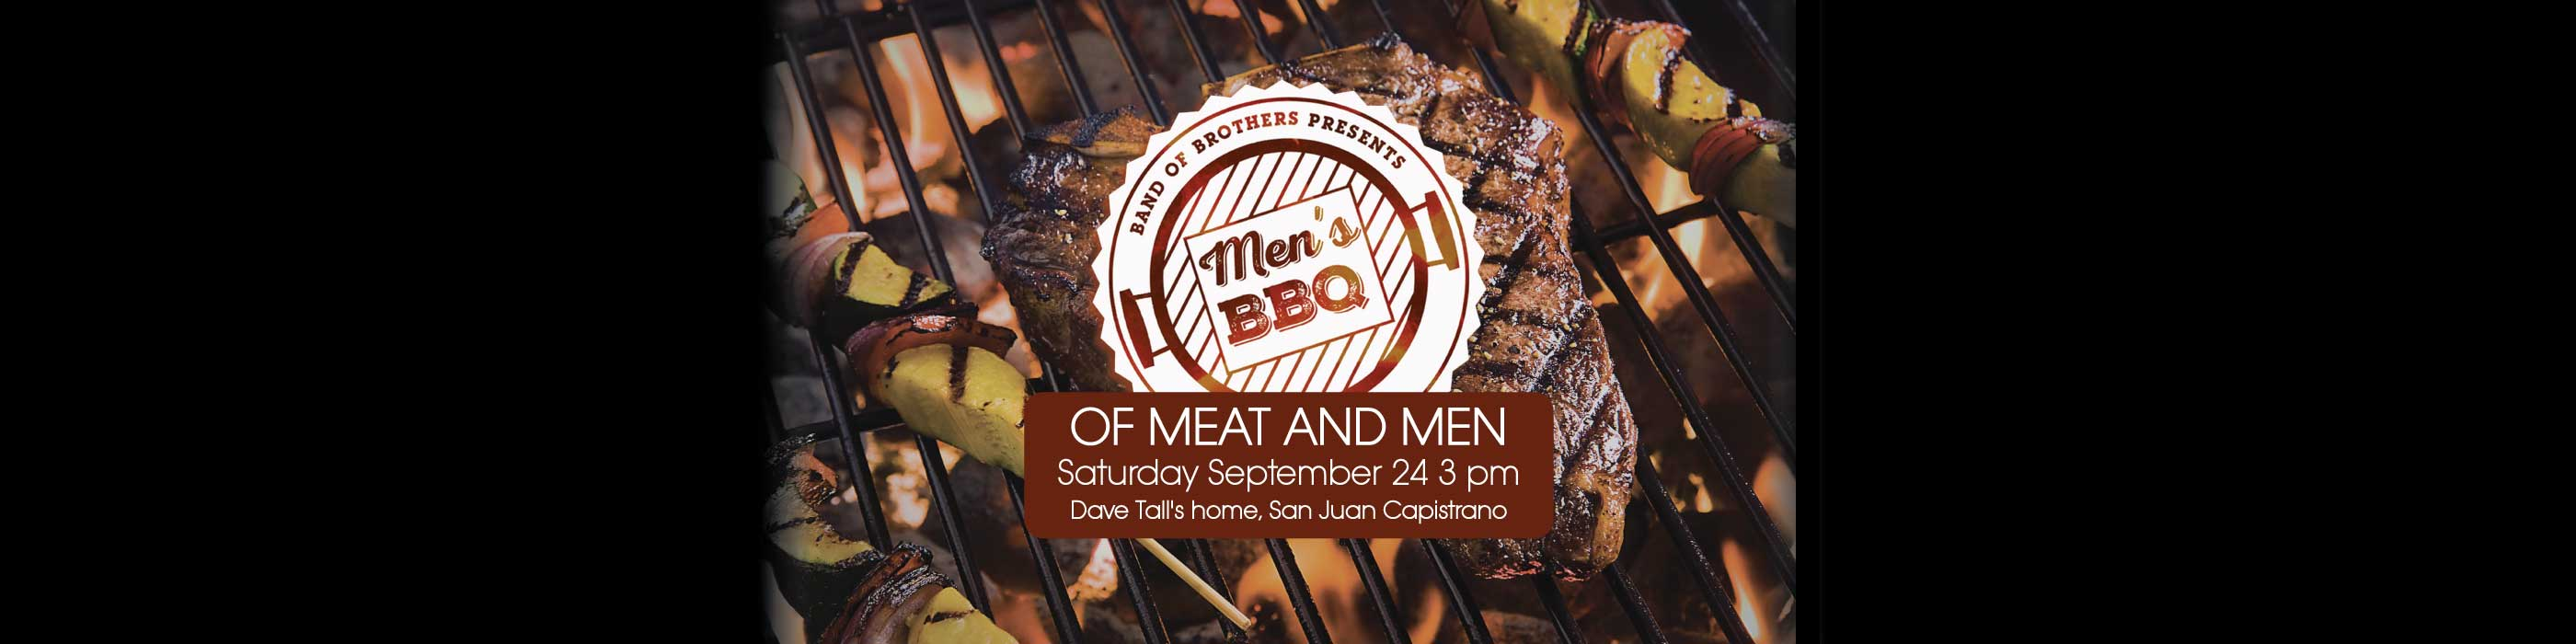 Summit-Of-Meat-and-Men-092416_web